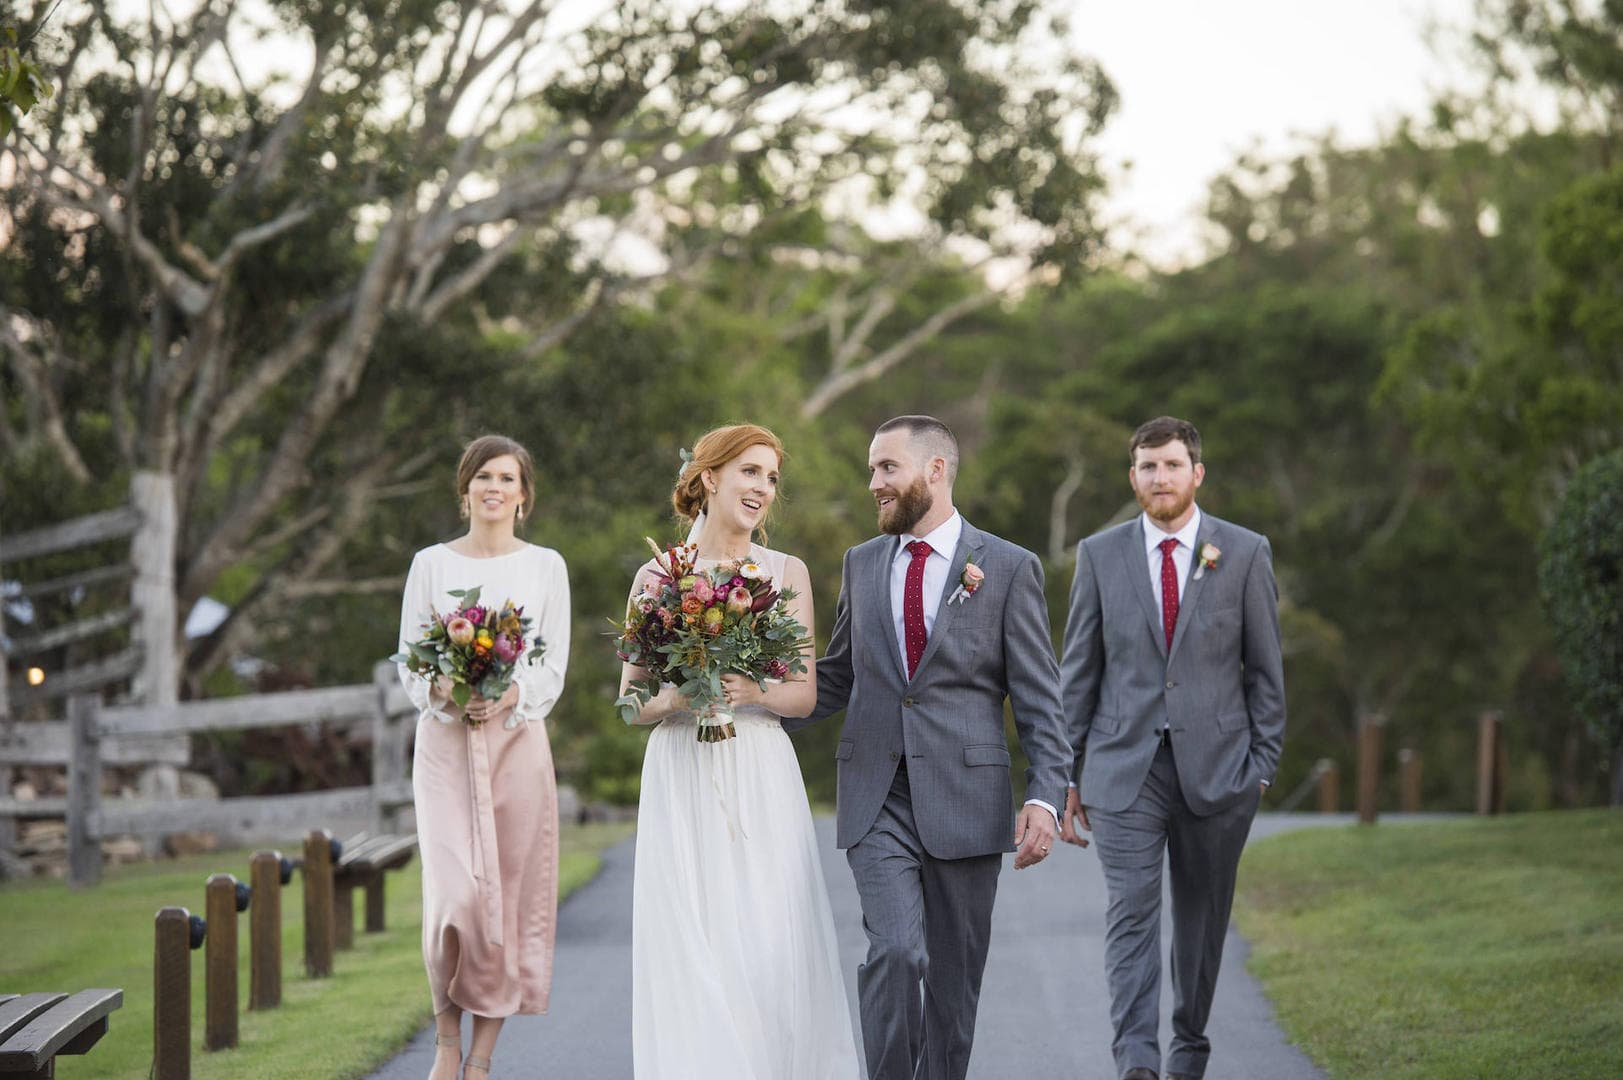 private wedding venues sunshine coast | Yandina Station Weddings - Studio Sixty Photography